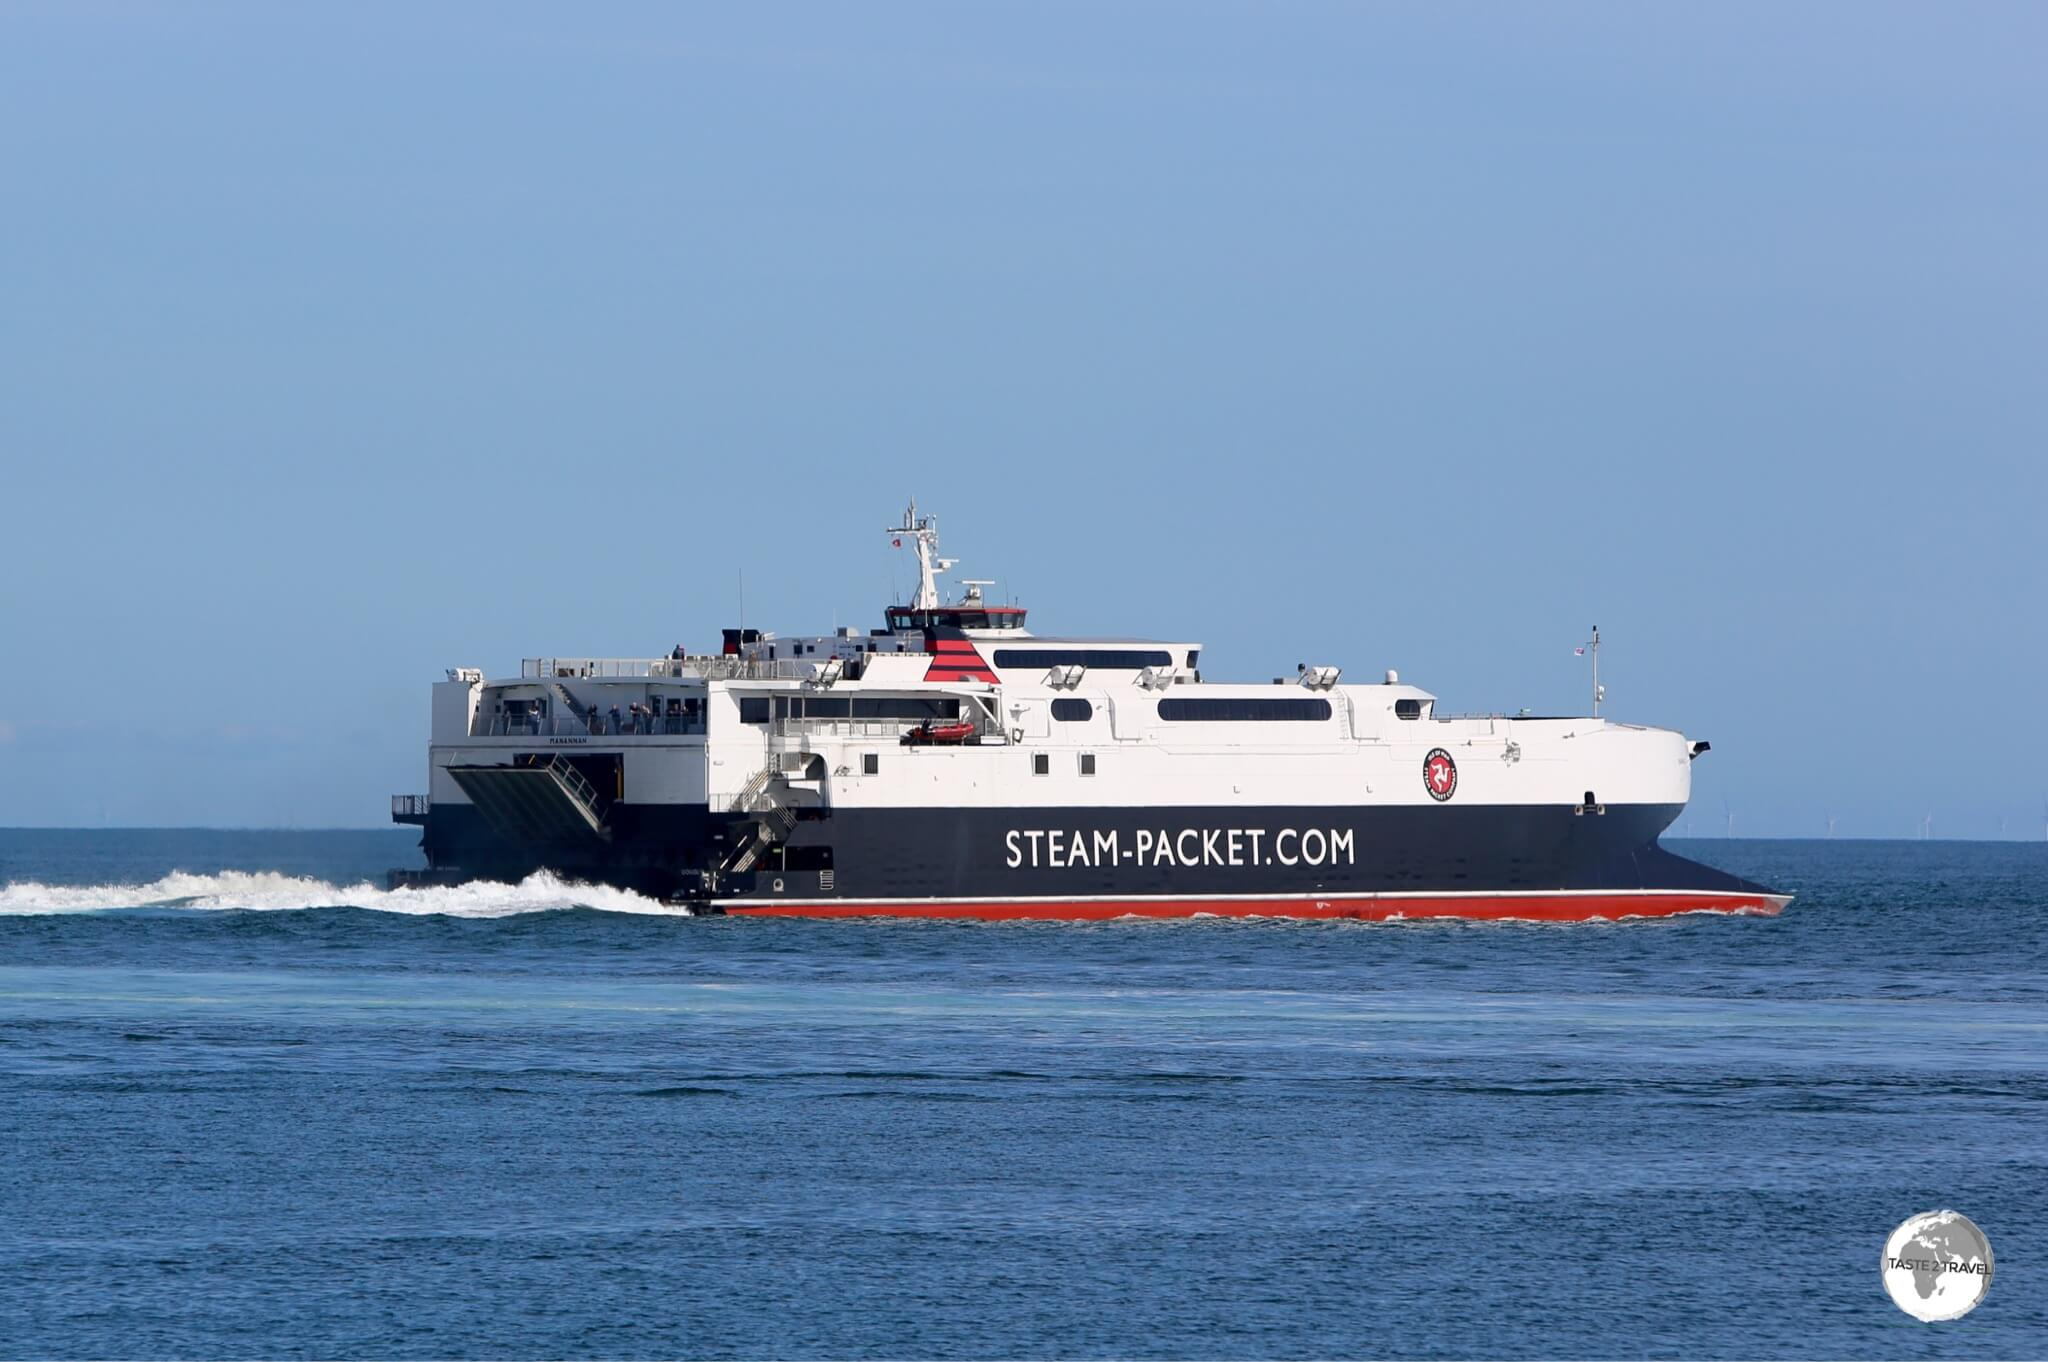 The Isle of Man Steam Packet Company Ferries connect the island to ports in the UK and Ireland.